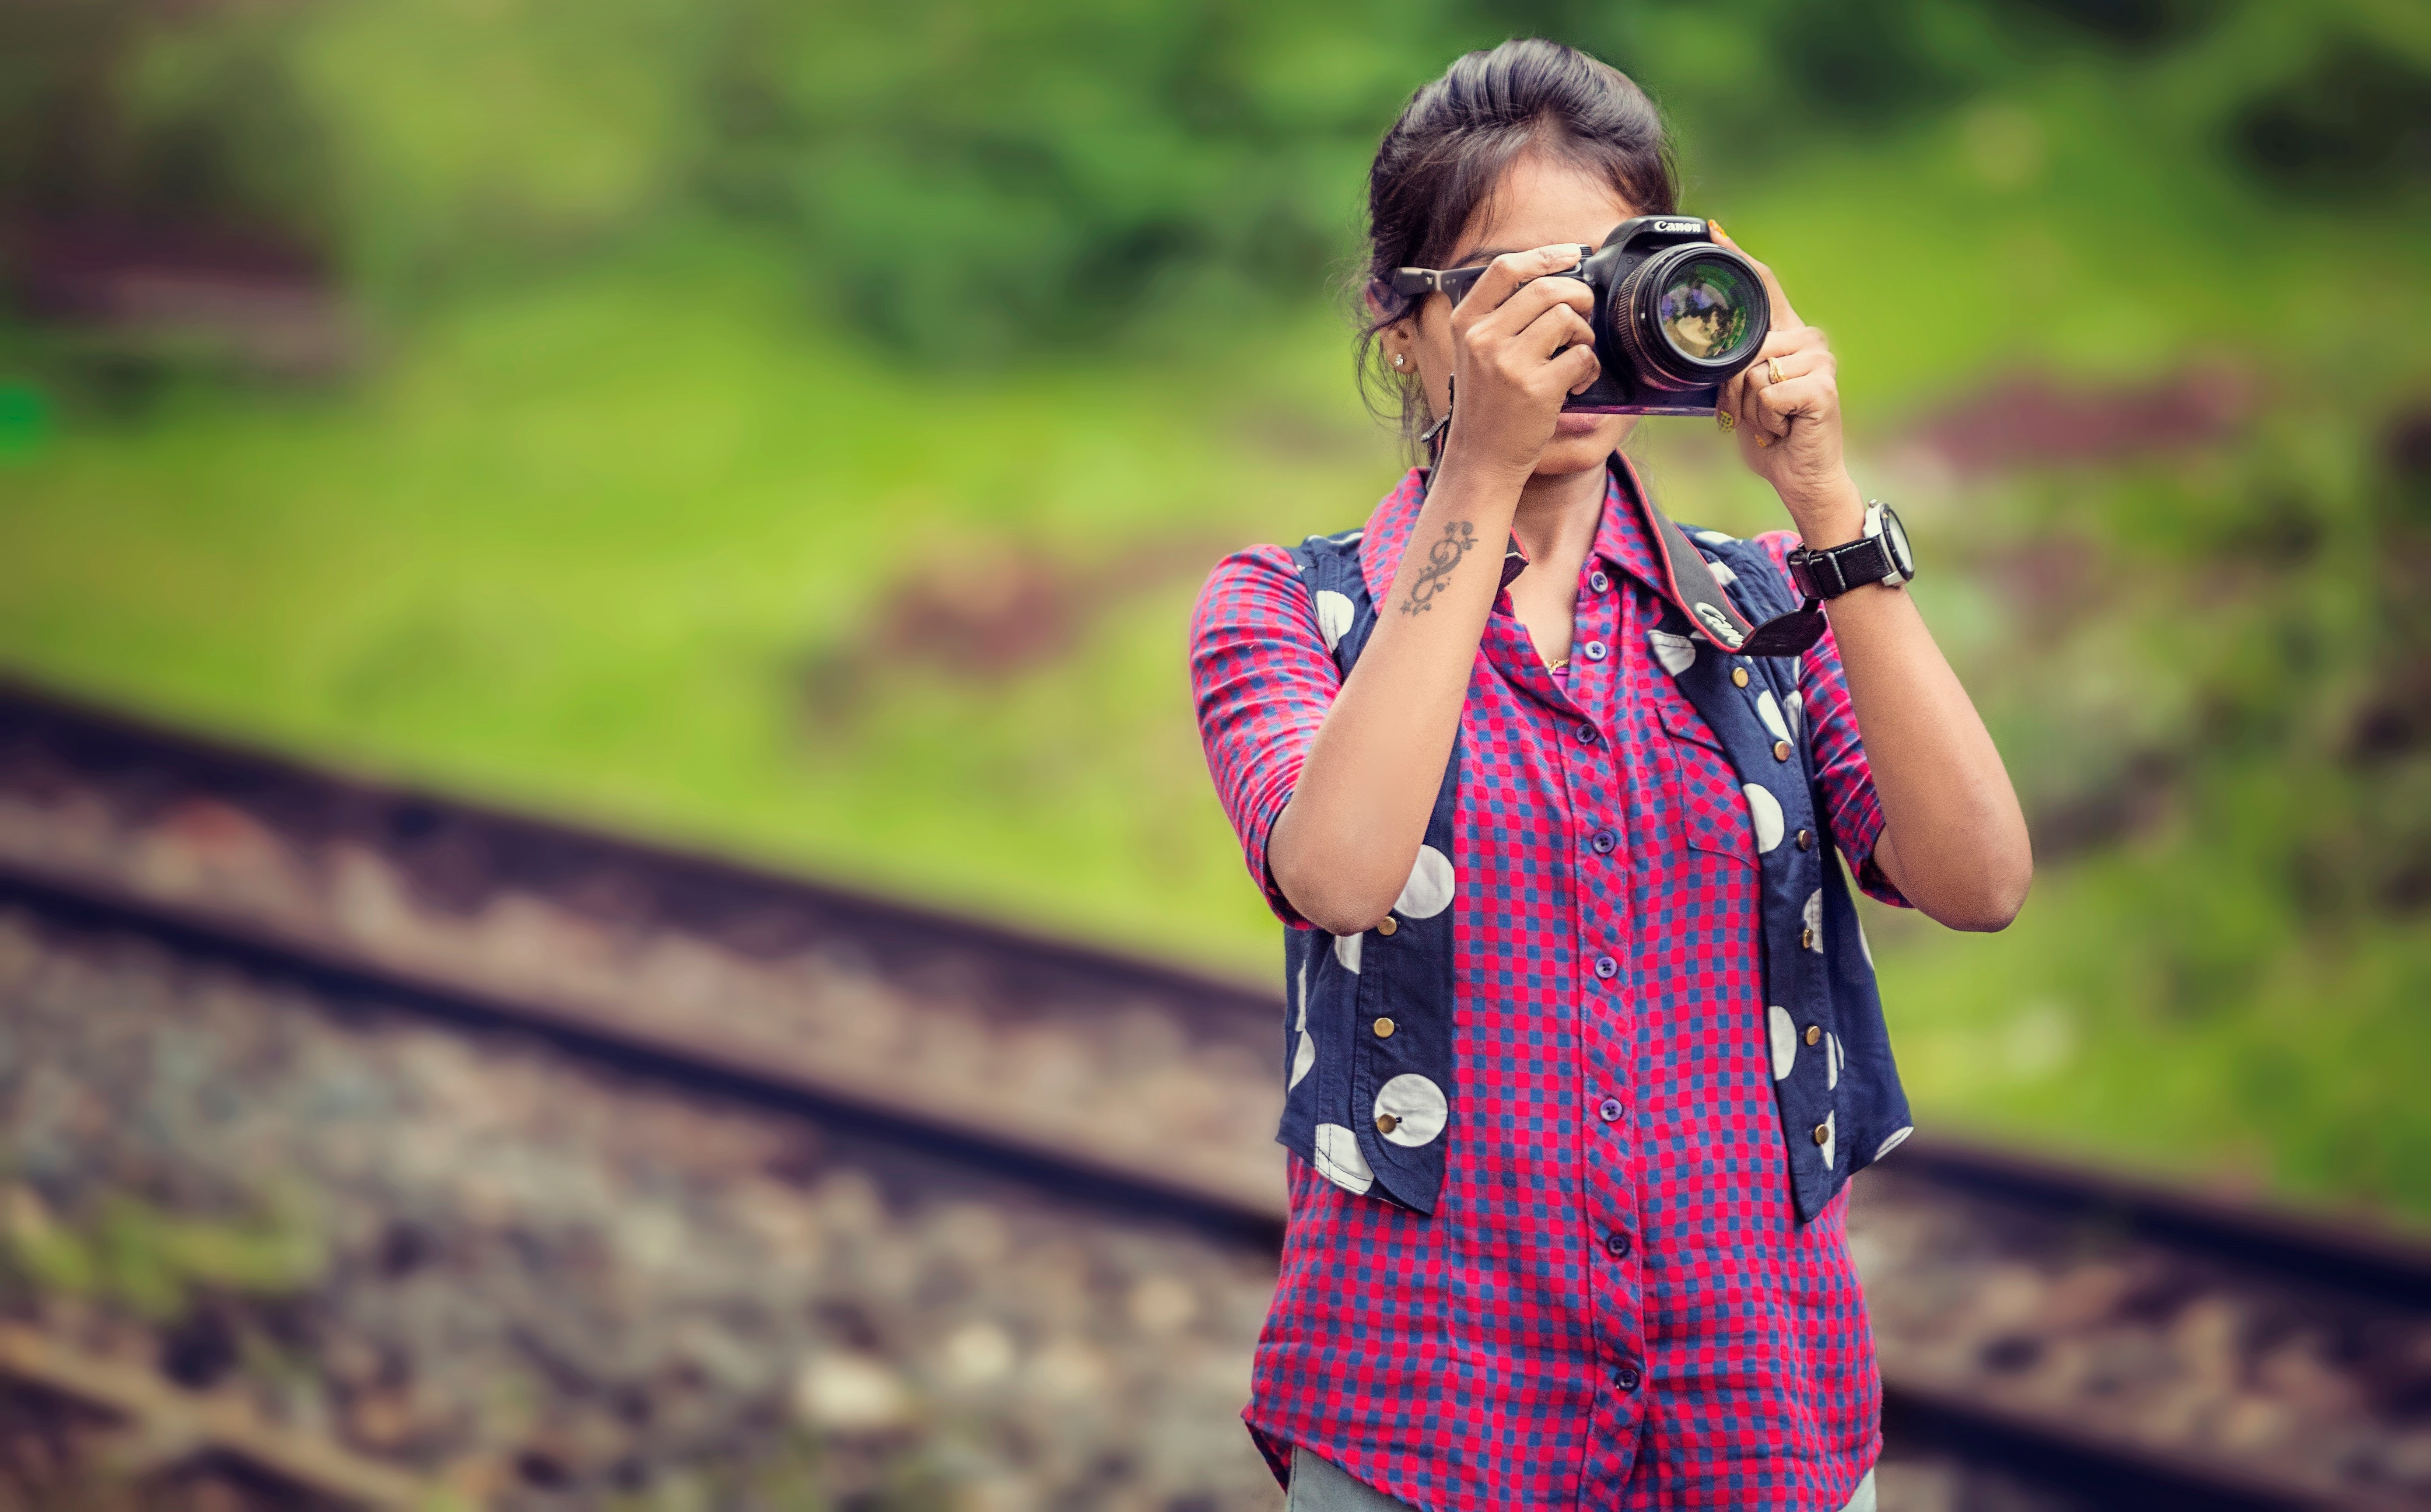 Woman Holding Black Dslr Camera Free Stock Photo How to use fotophire for dslr photo editing. pexels